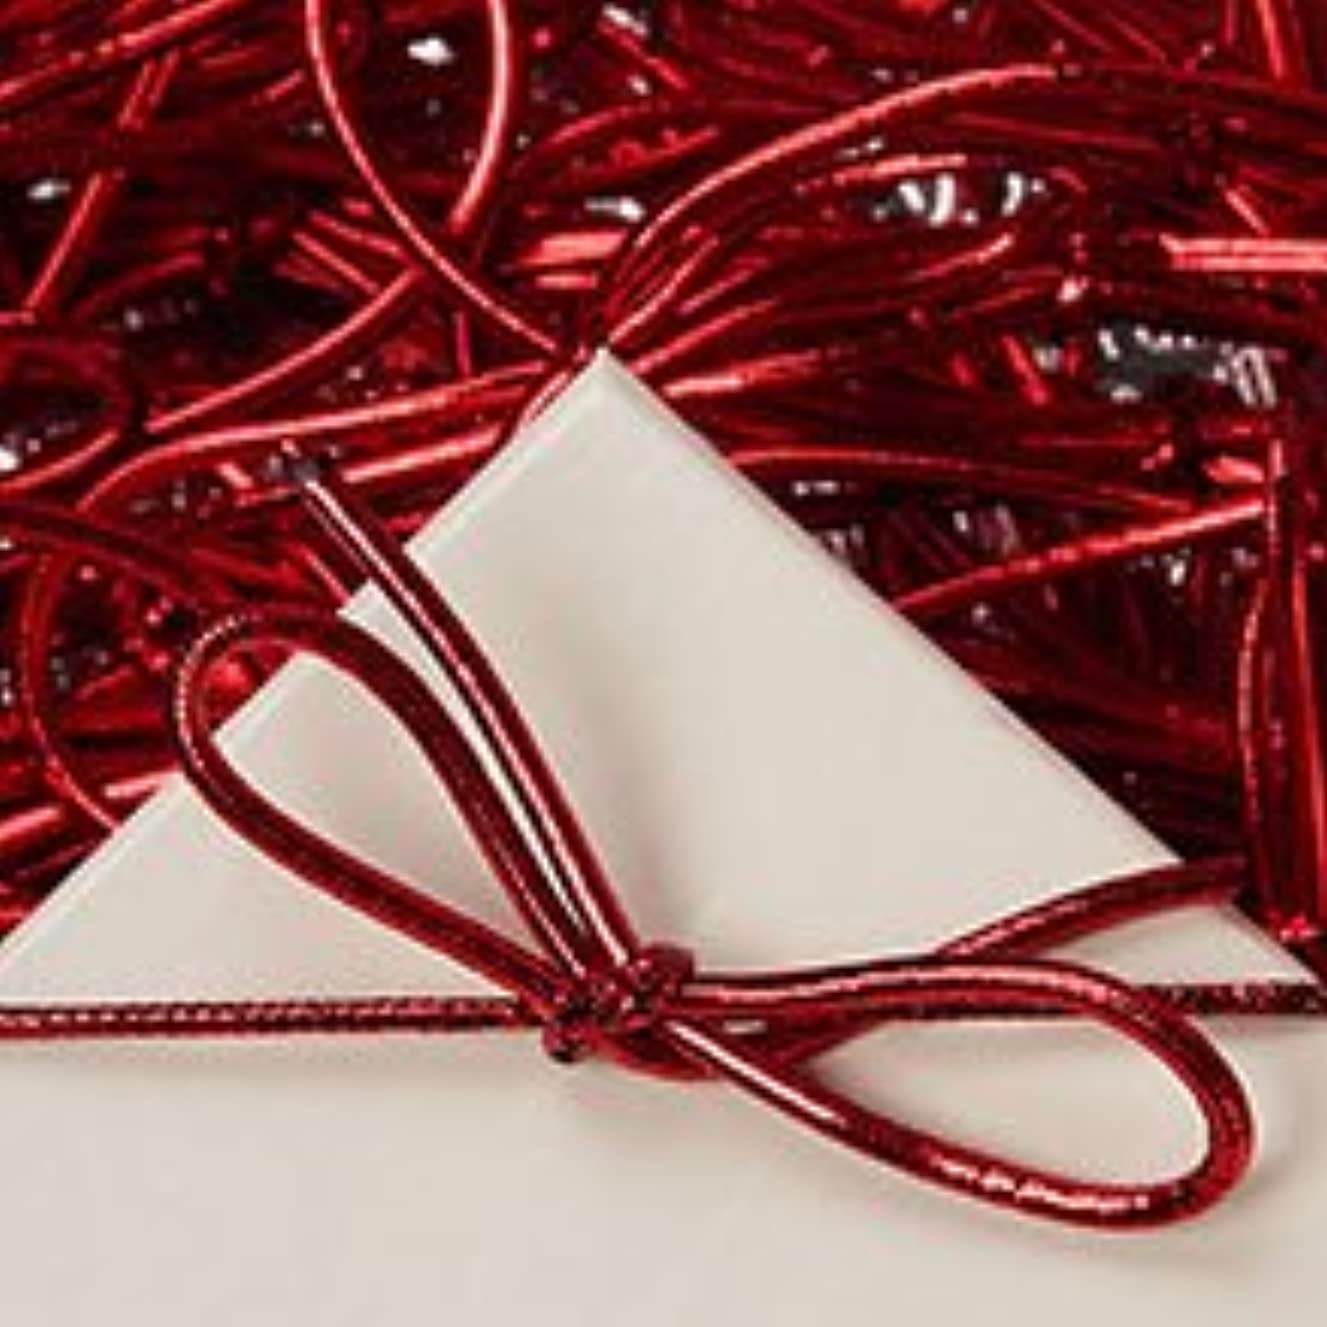 6 inch Red Stretch Loops Shiny Metallic Braided Elastic Cords Pack of 100